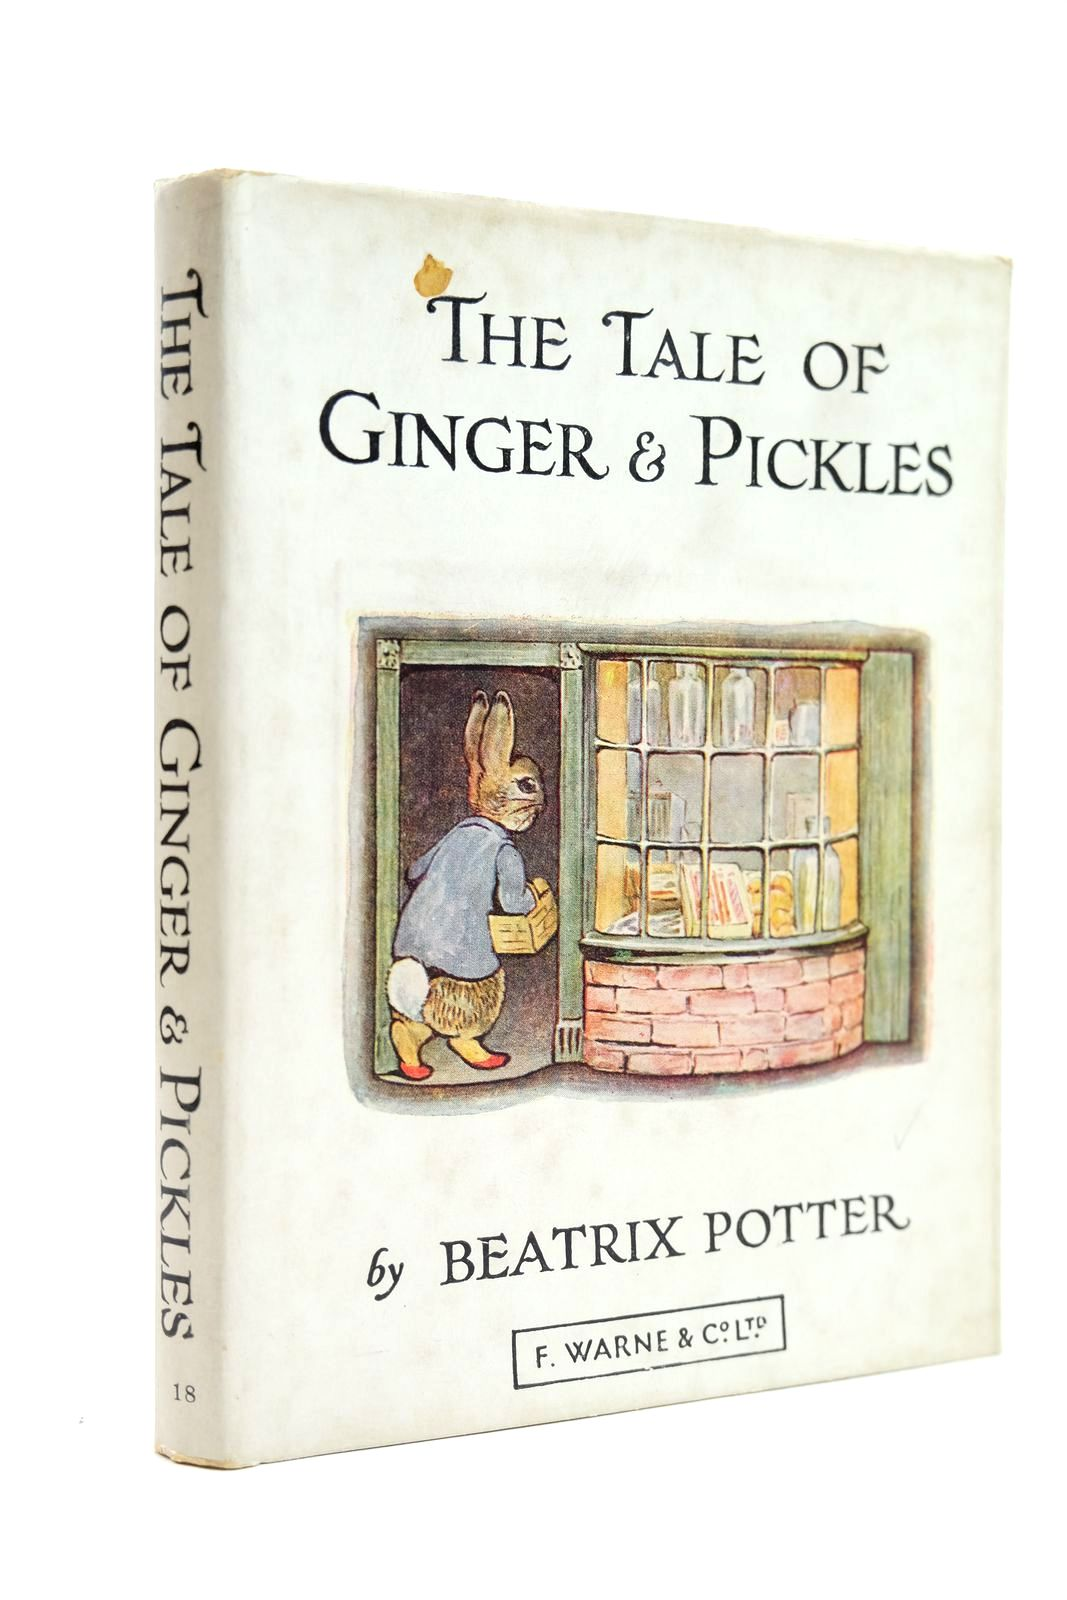 Photo of THE TALE OF GINGER & PICKLES written by Potter, Beatrix illustrated by Potter, Beatrix published by Frederick Warne & Co Ltd. (STOCK CODE: 2131894)  for sale by Stella & Rose's Books